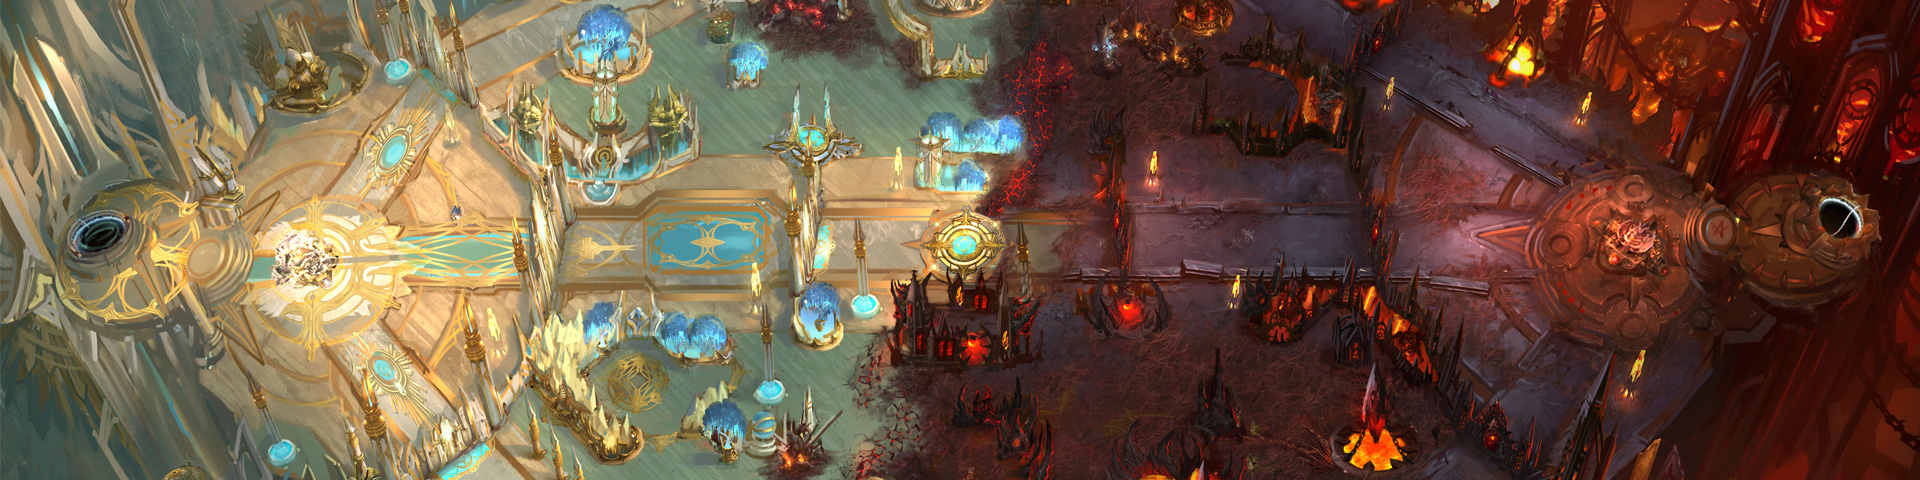 Heroes Of The Storm Maps Math of the Storm: Maps, Part II (Universe maps in Hero League